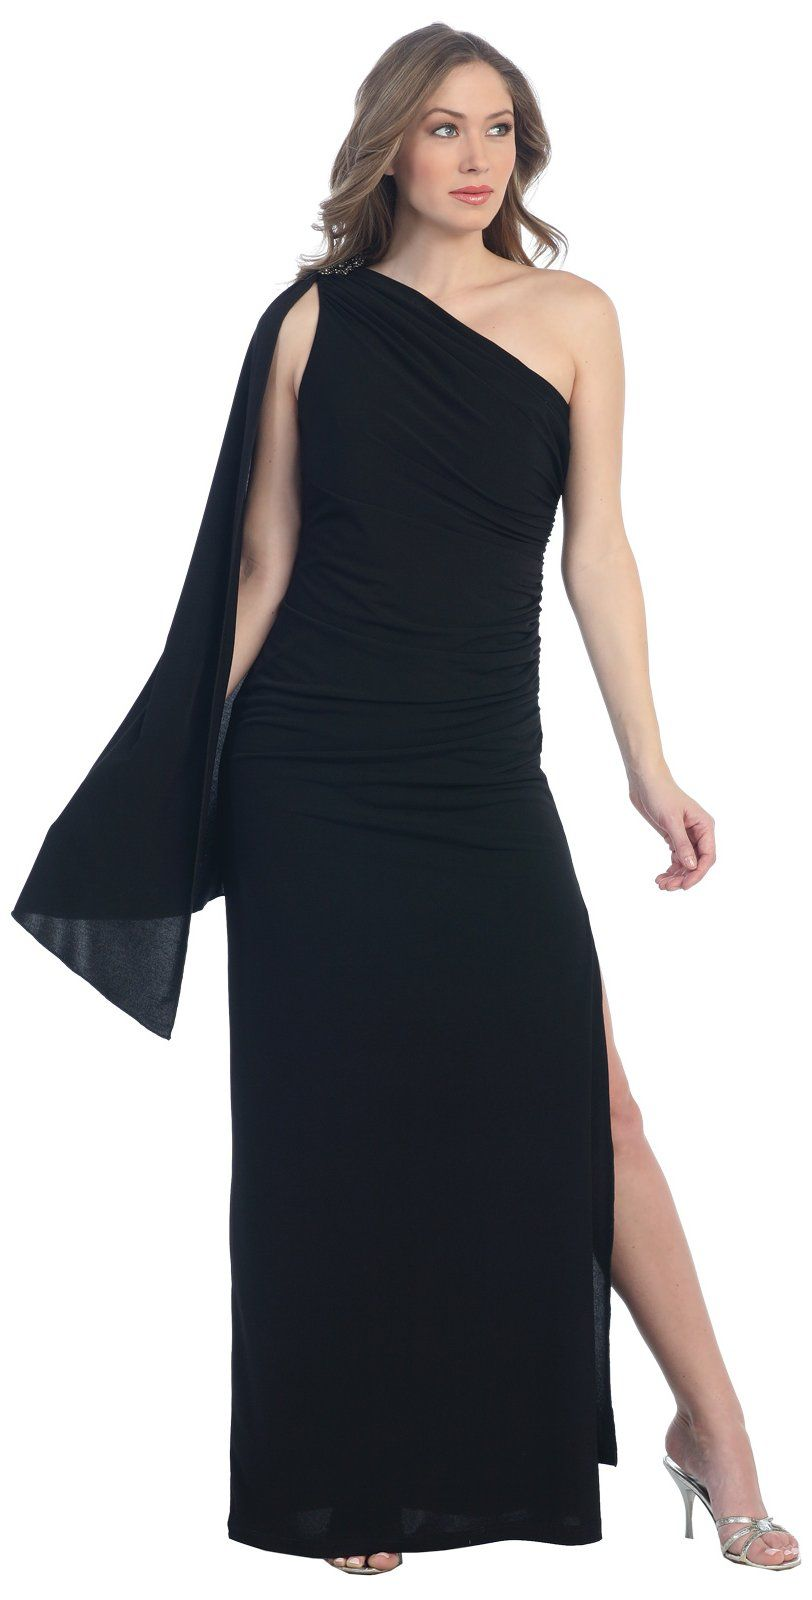 0ca356ba4503 Sexy One Shoulder Formal Long Black Dress Sash Tight Fitted Leg Slit  103.99